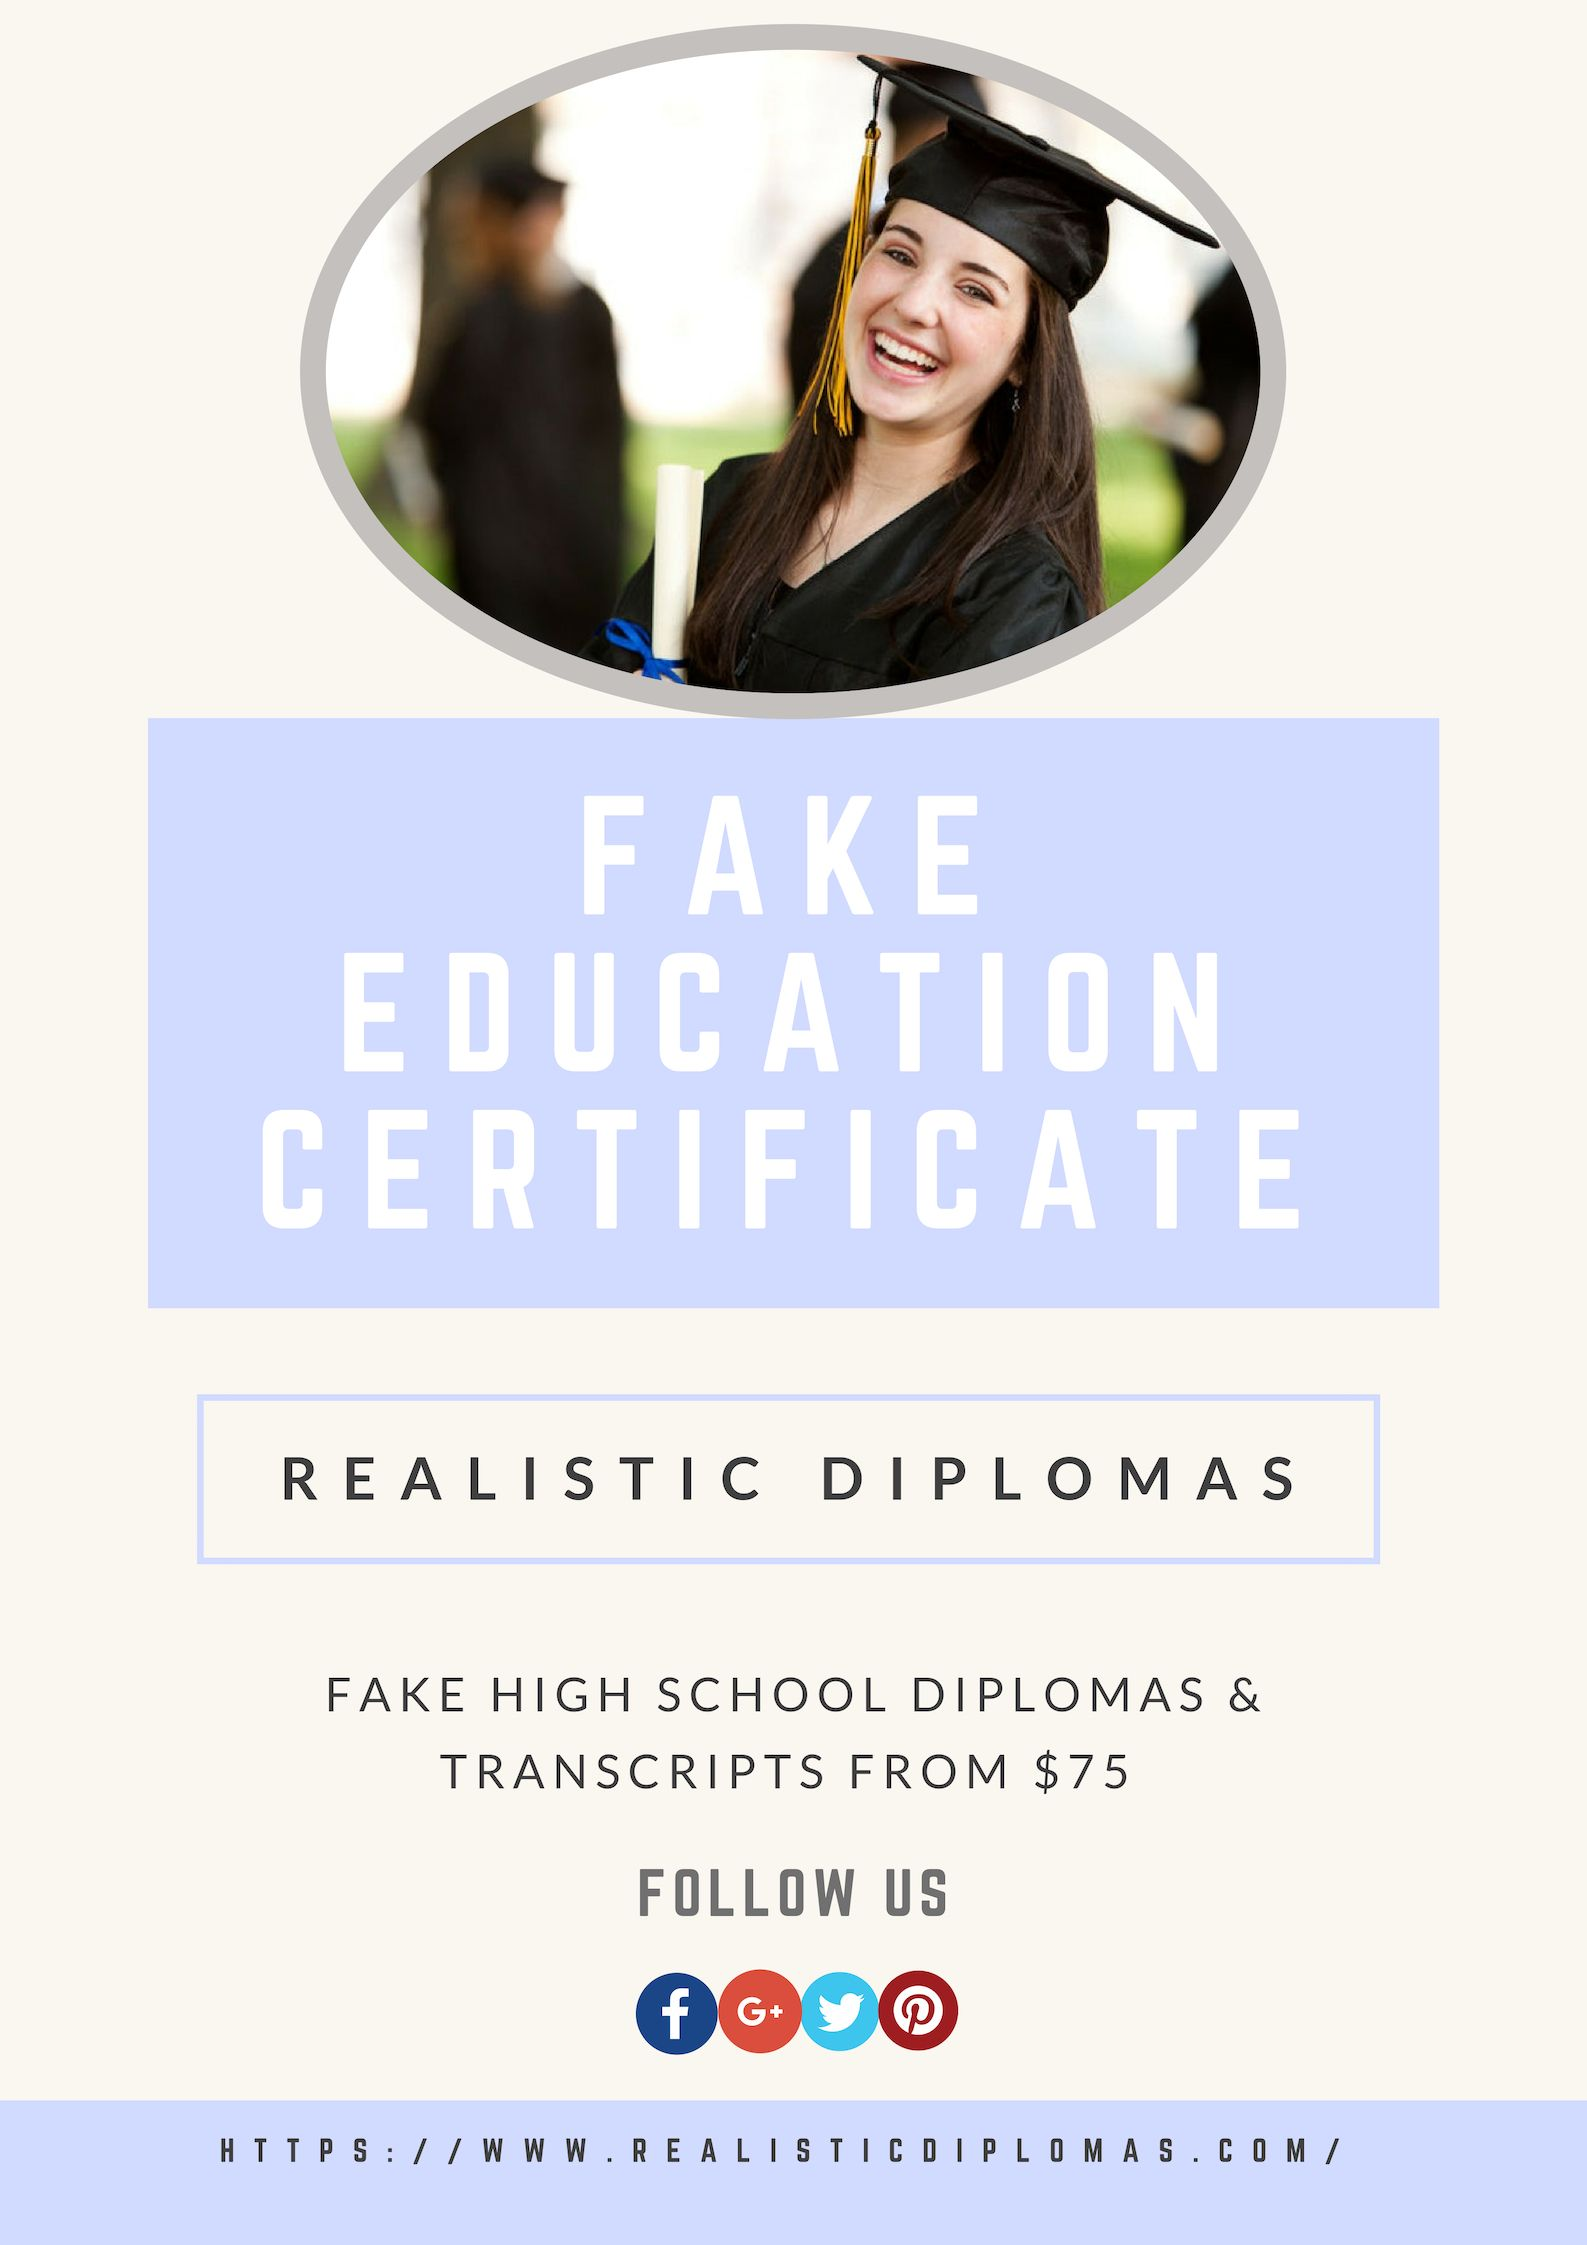 Whether You Are Looking For A High School Diploma From 1974 Or A